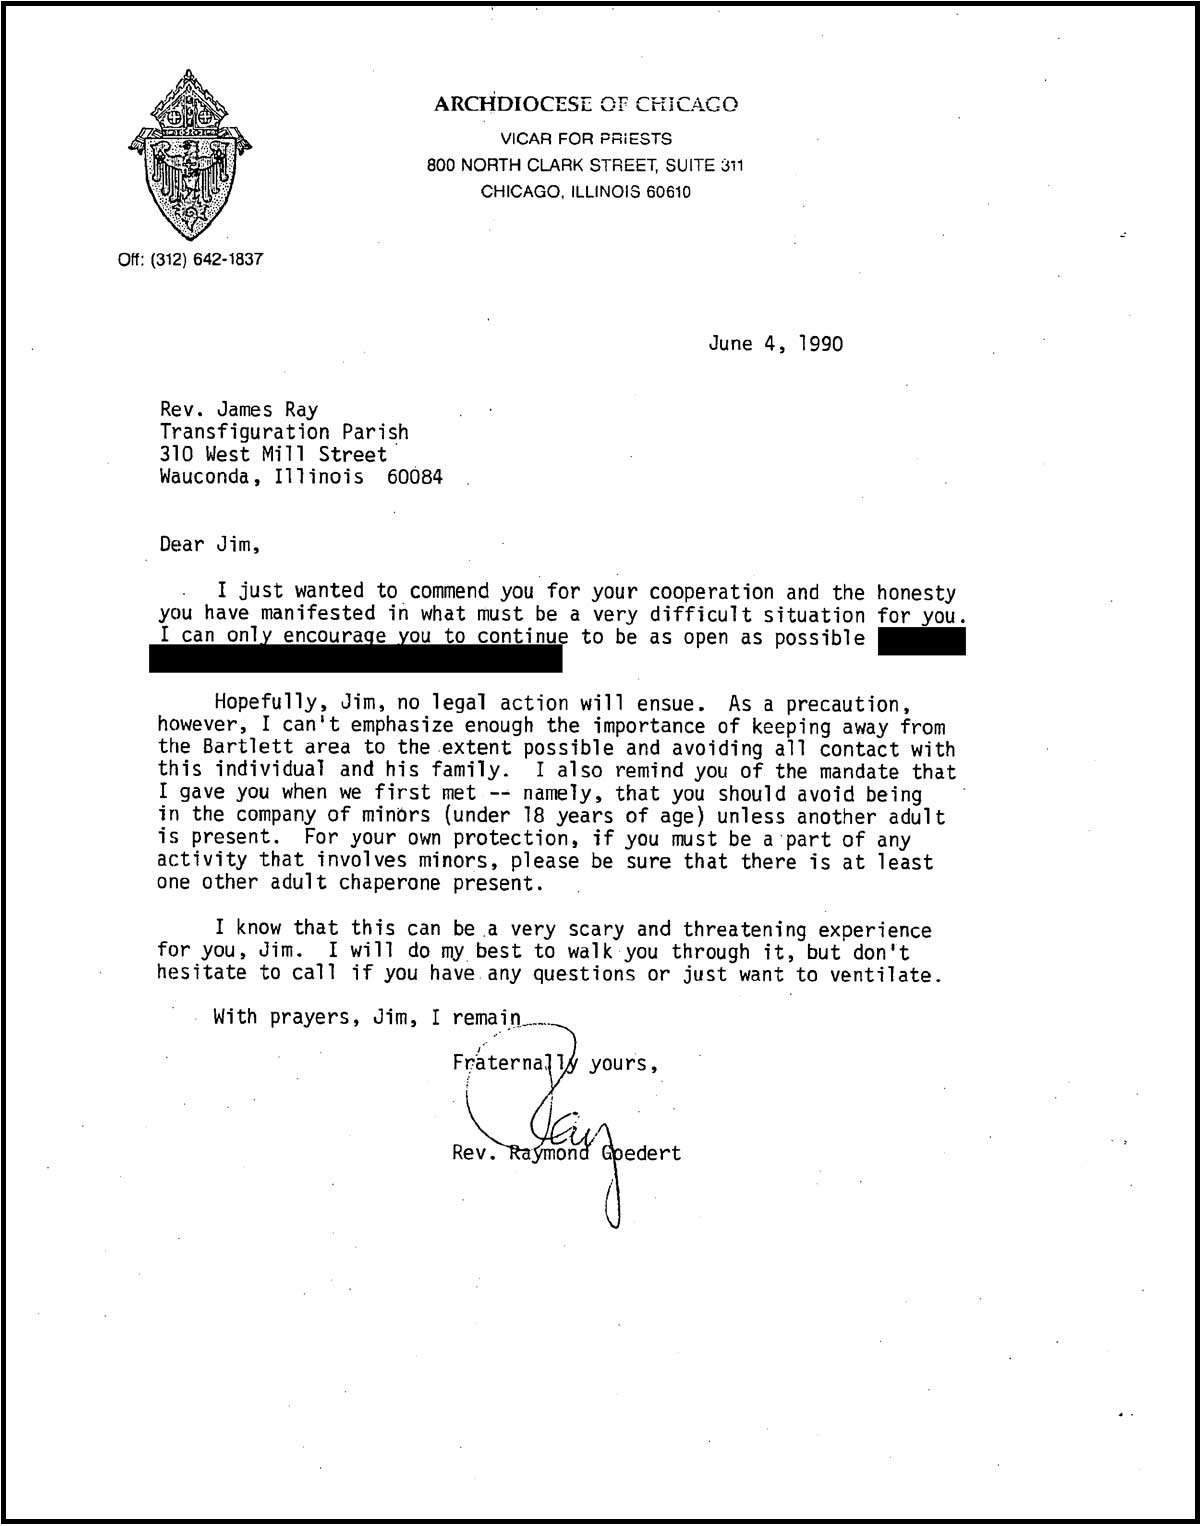 A 1990 letter from Rev. Raymond Goedert, former Vicar for Priests for the Archdiocese of Chicago, to Rev. James Ray, praising his cooperation with Archdiocese efforts surrounding claims of sexual abuse. The letter also warns Ray to avoid all contact with minors. Record courtesy of the Archdiocese of Chicago.